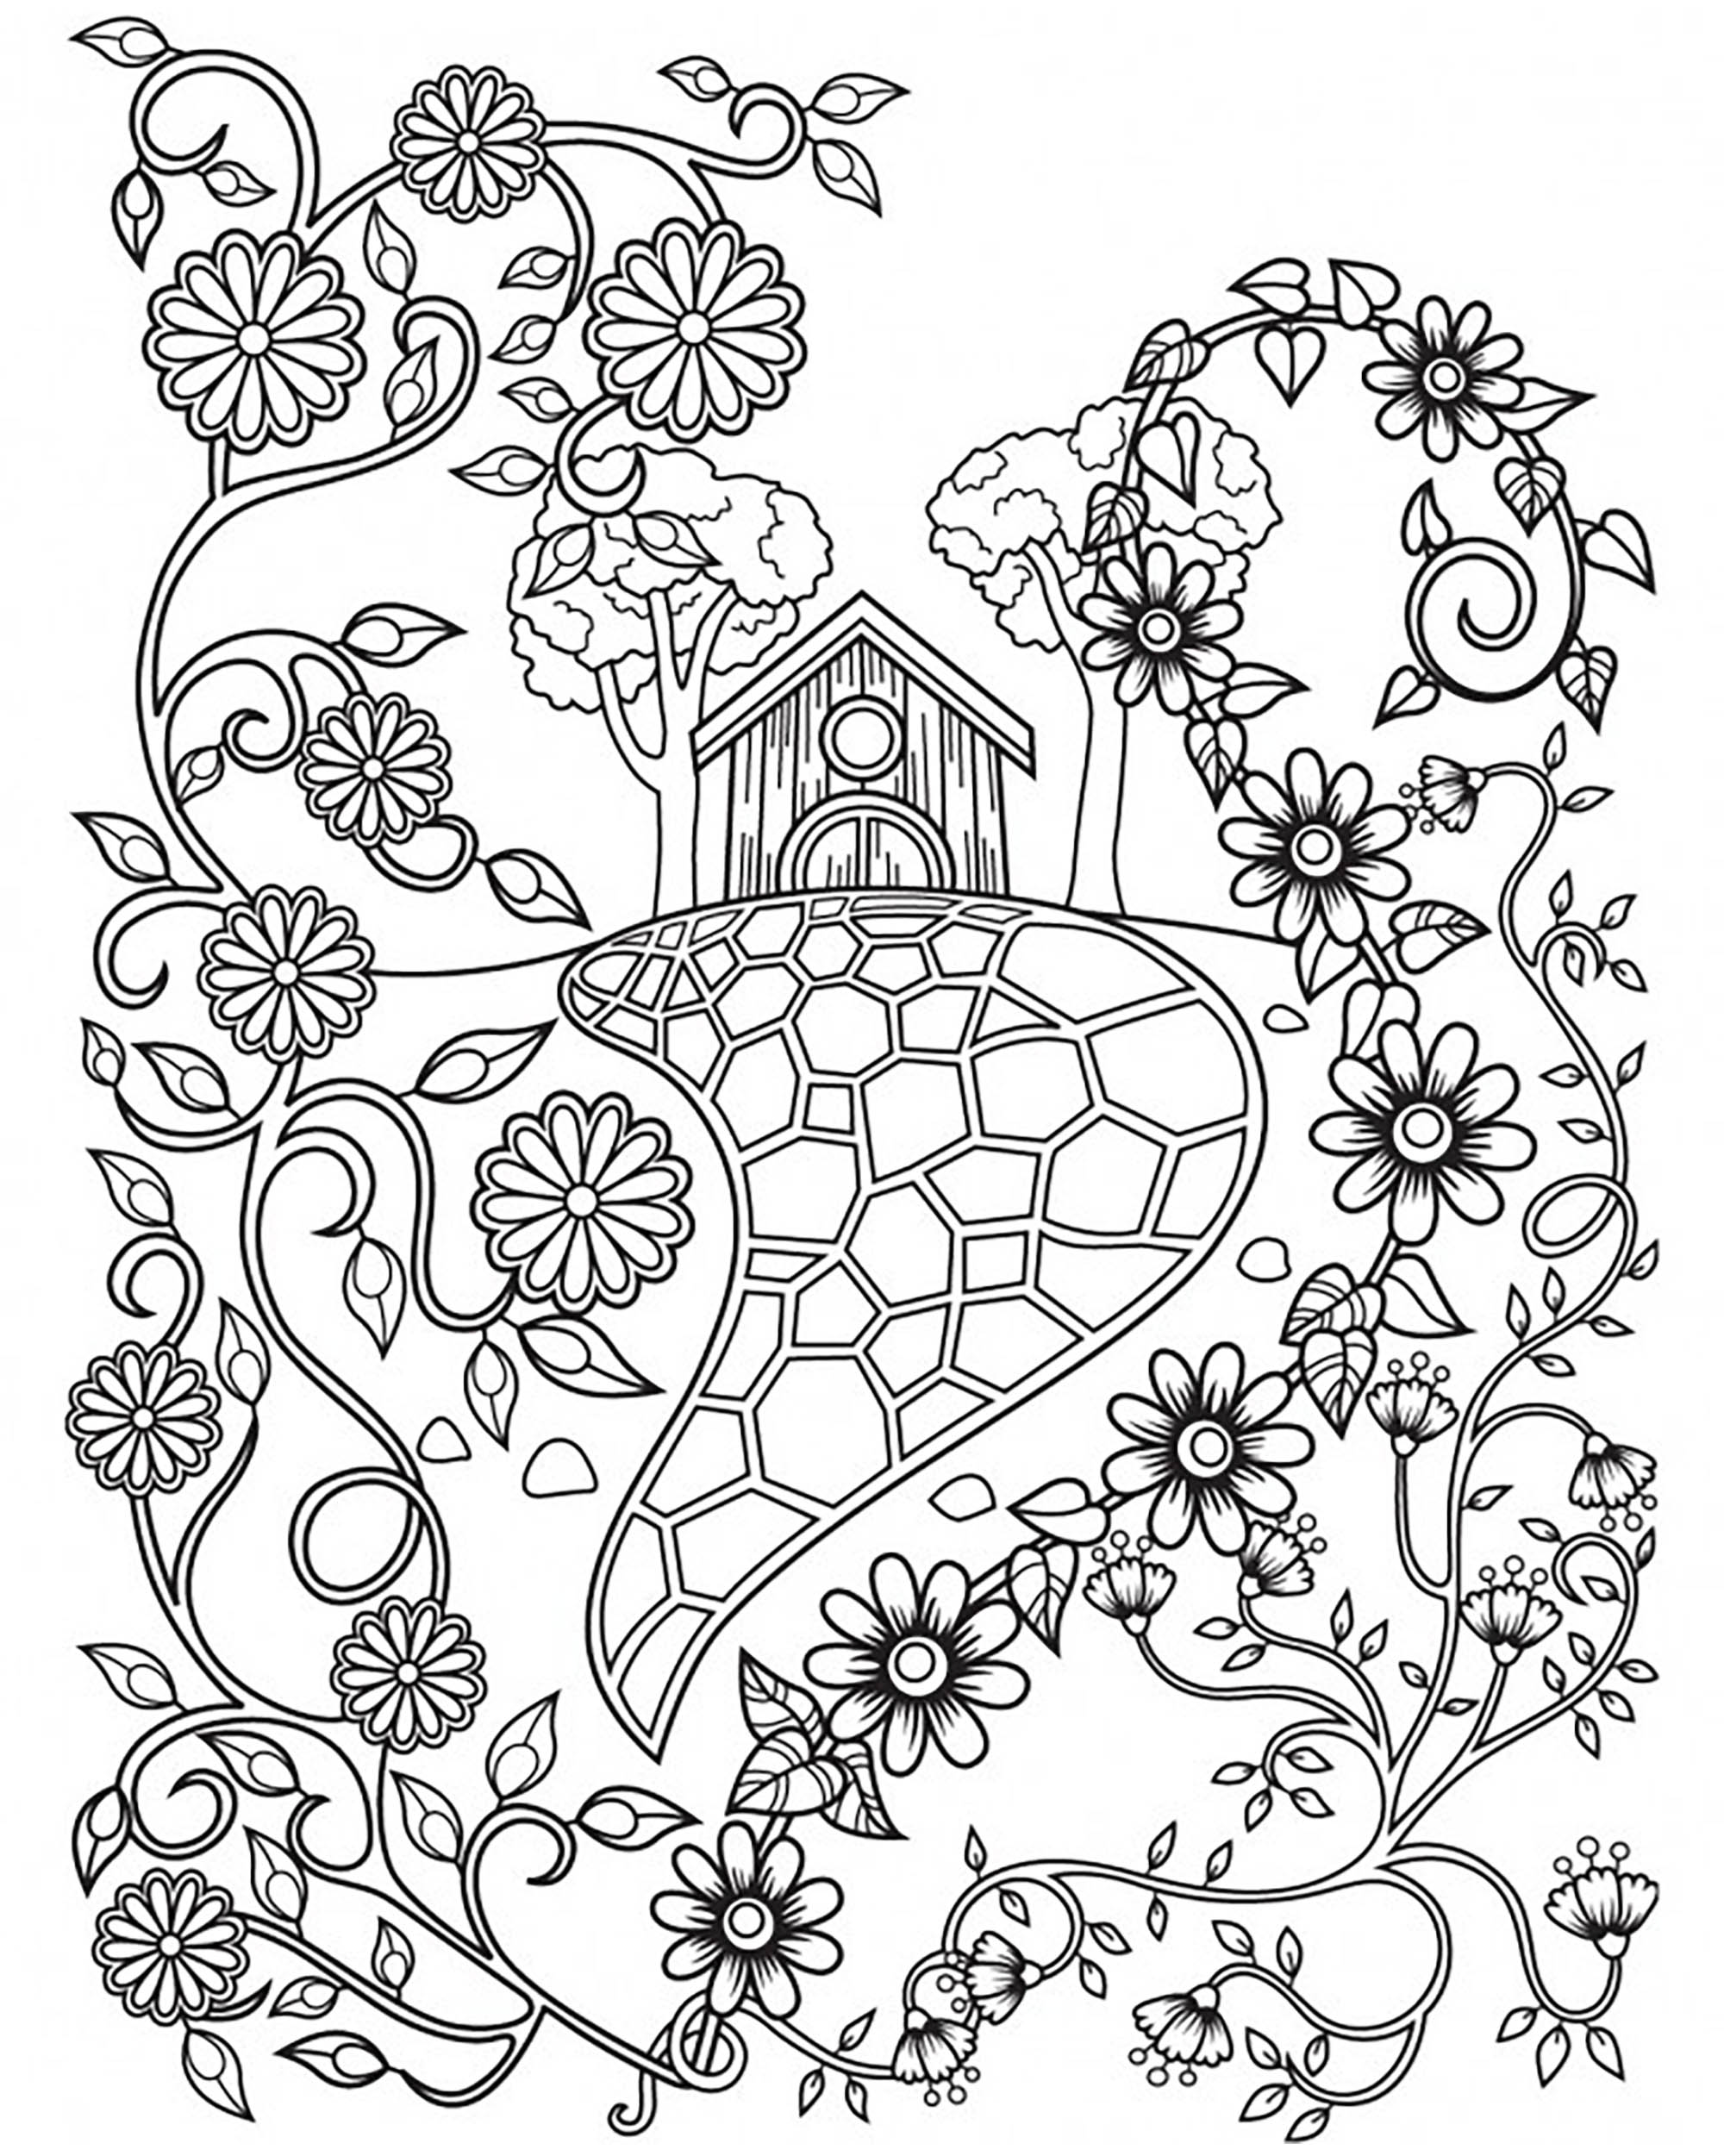 fairy tale coloring pages free fairy tales coloring book coloring pages for kids coloring tale free pages fairy